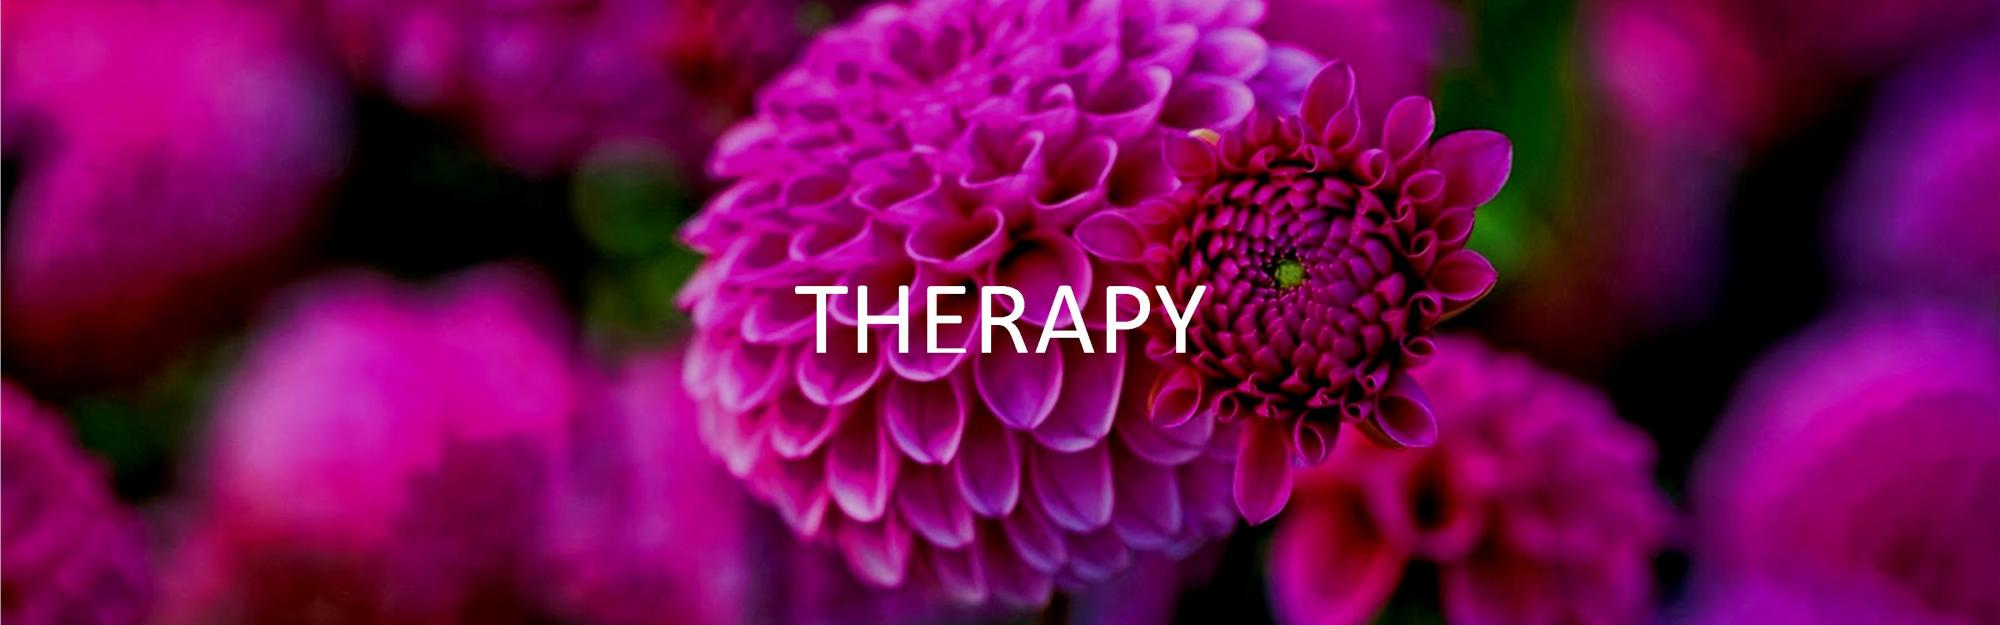 therapy-header-pic